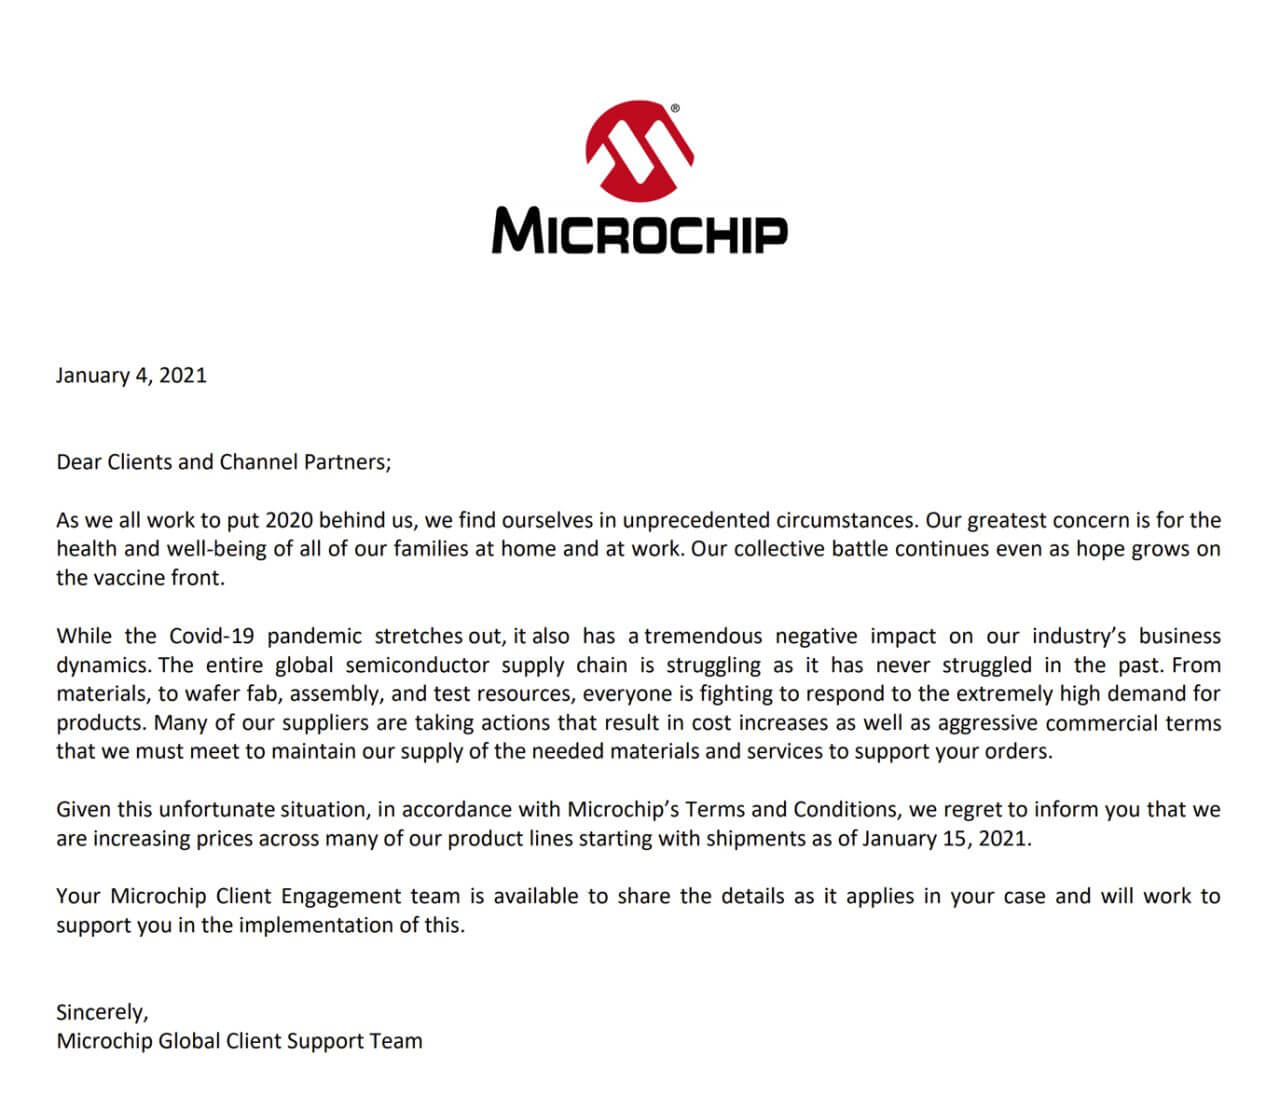 Microchip Price Increases